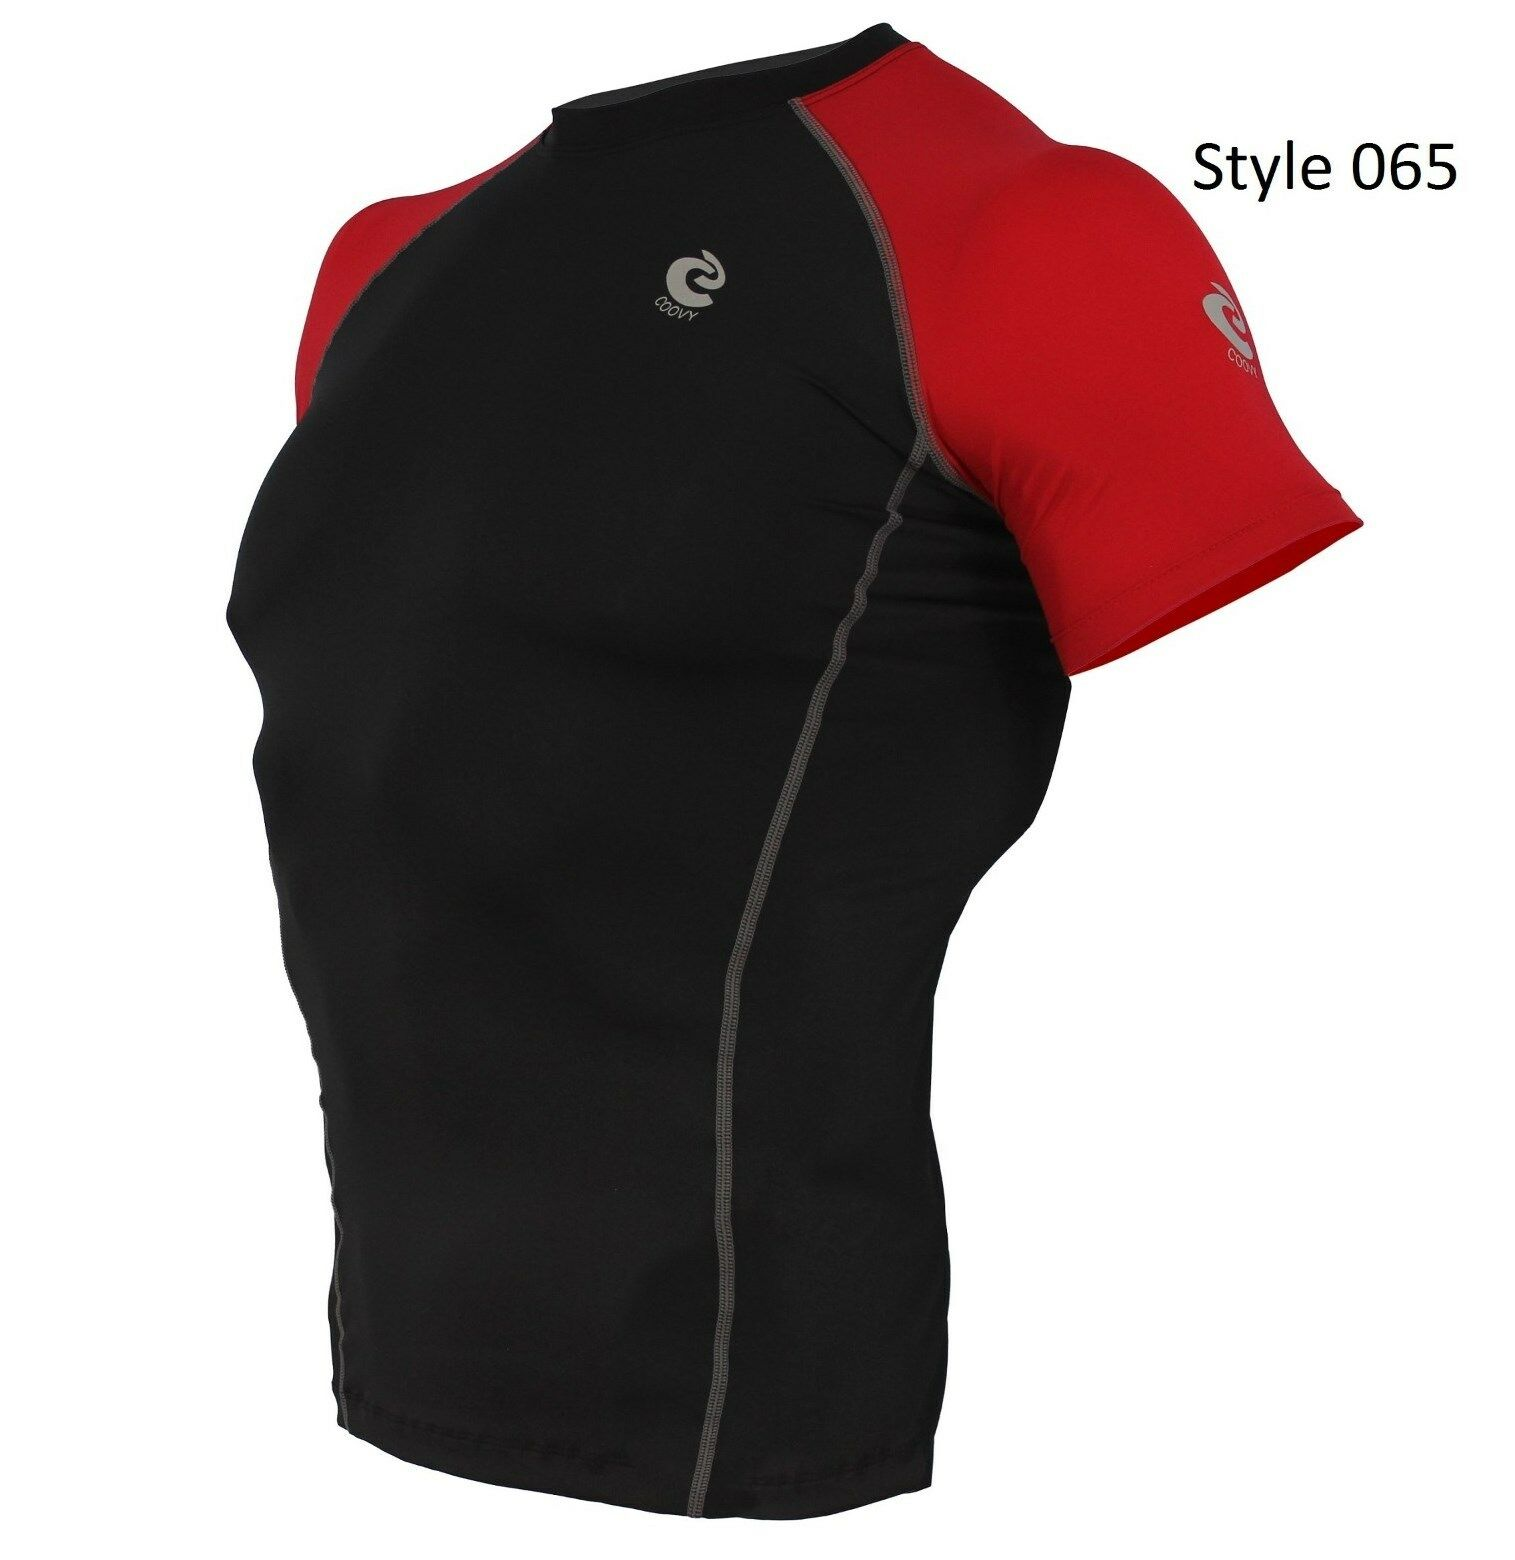 065 Black w/Red Short Sleeve Shirt